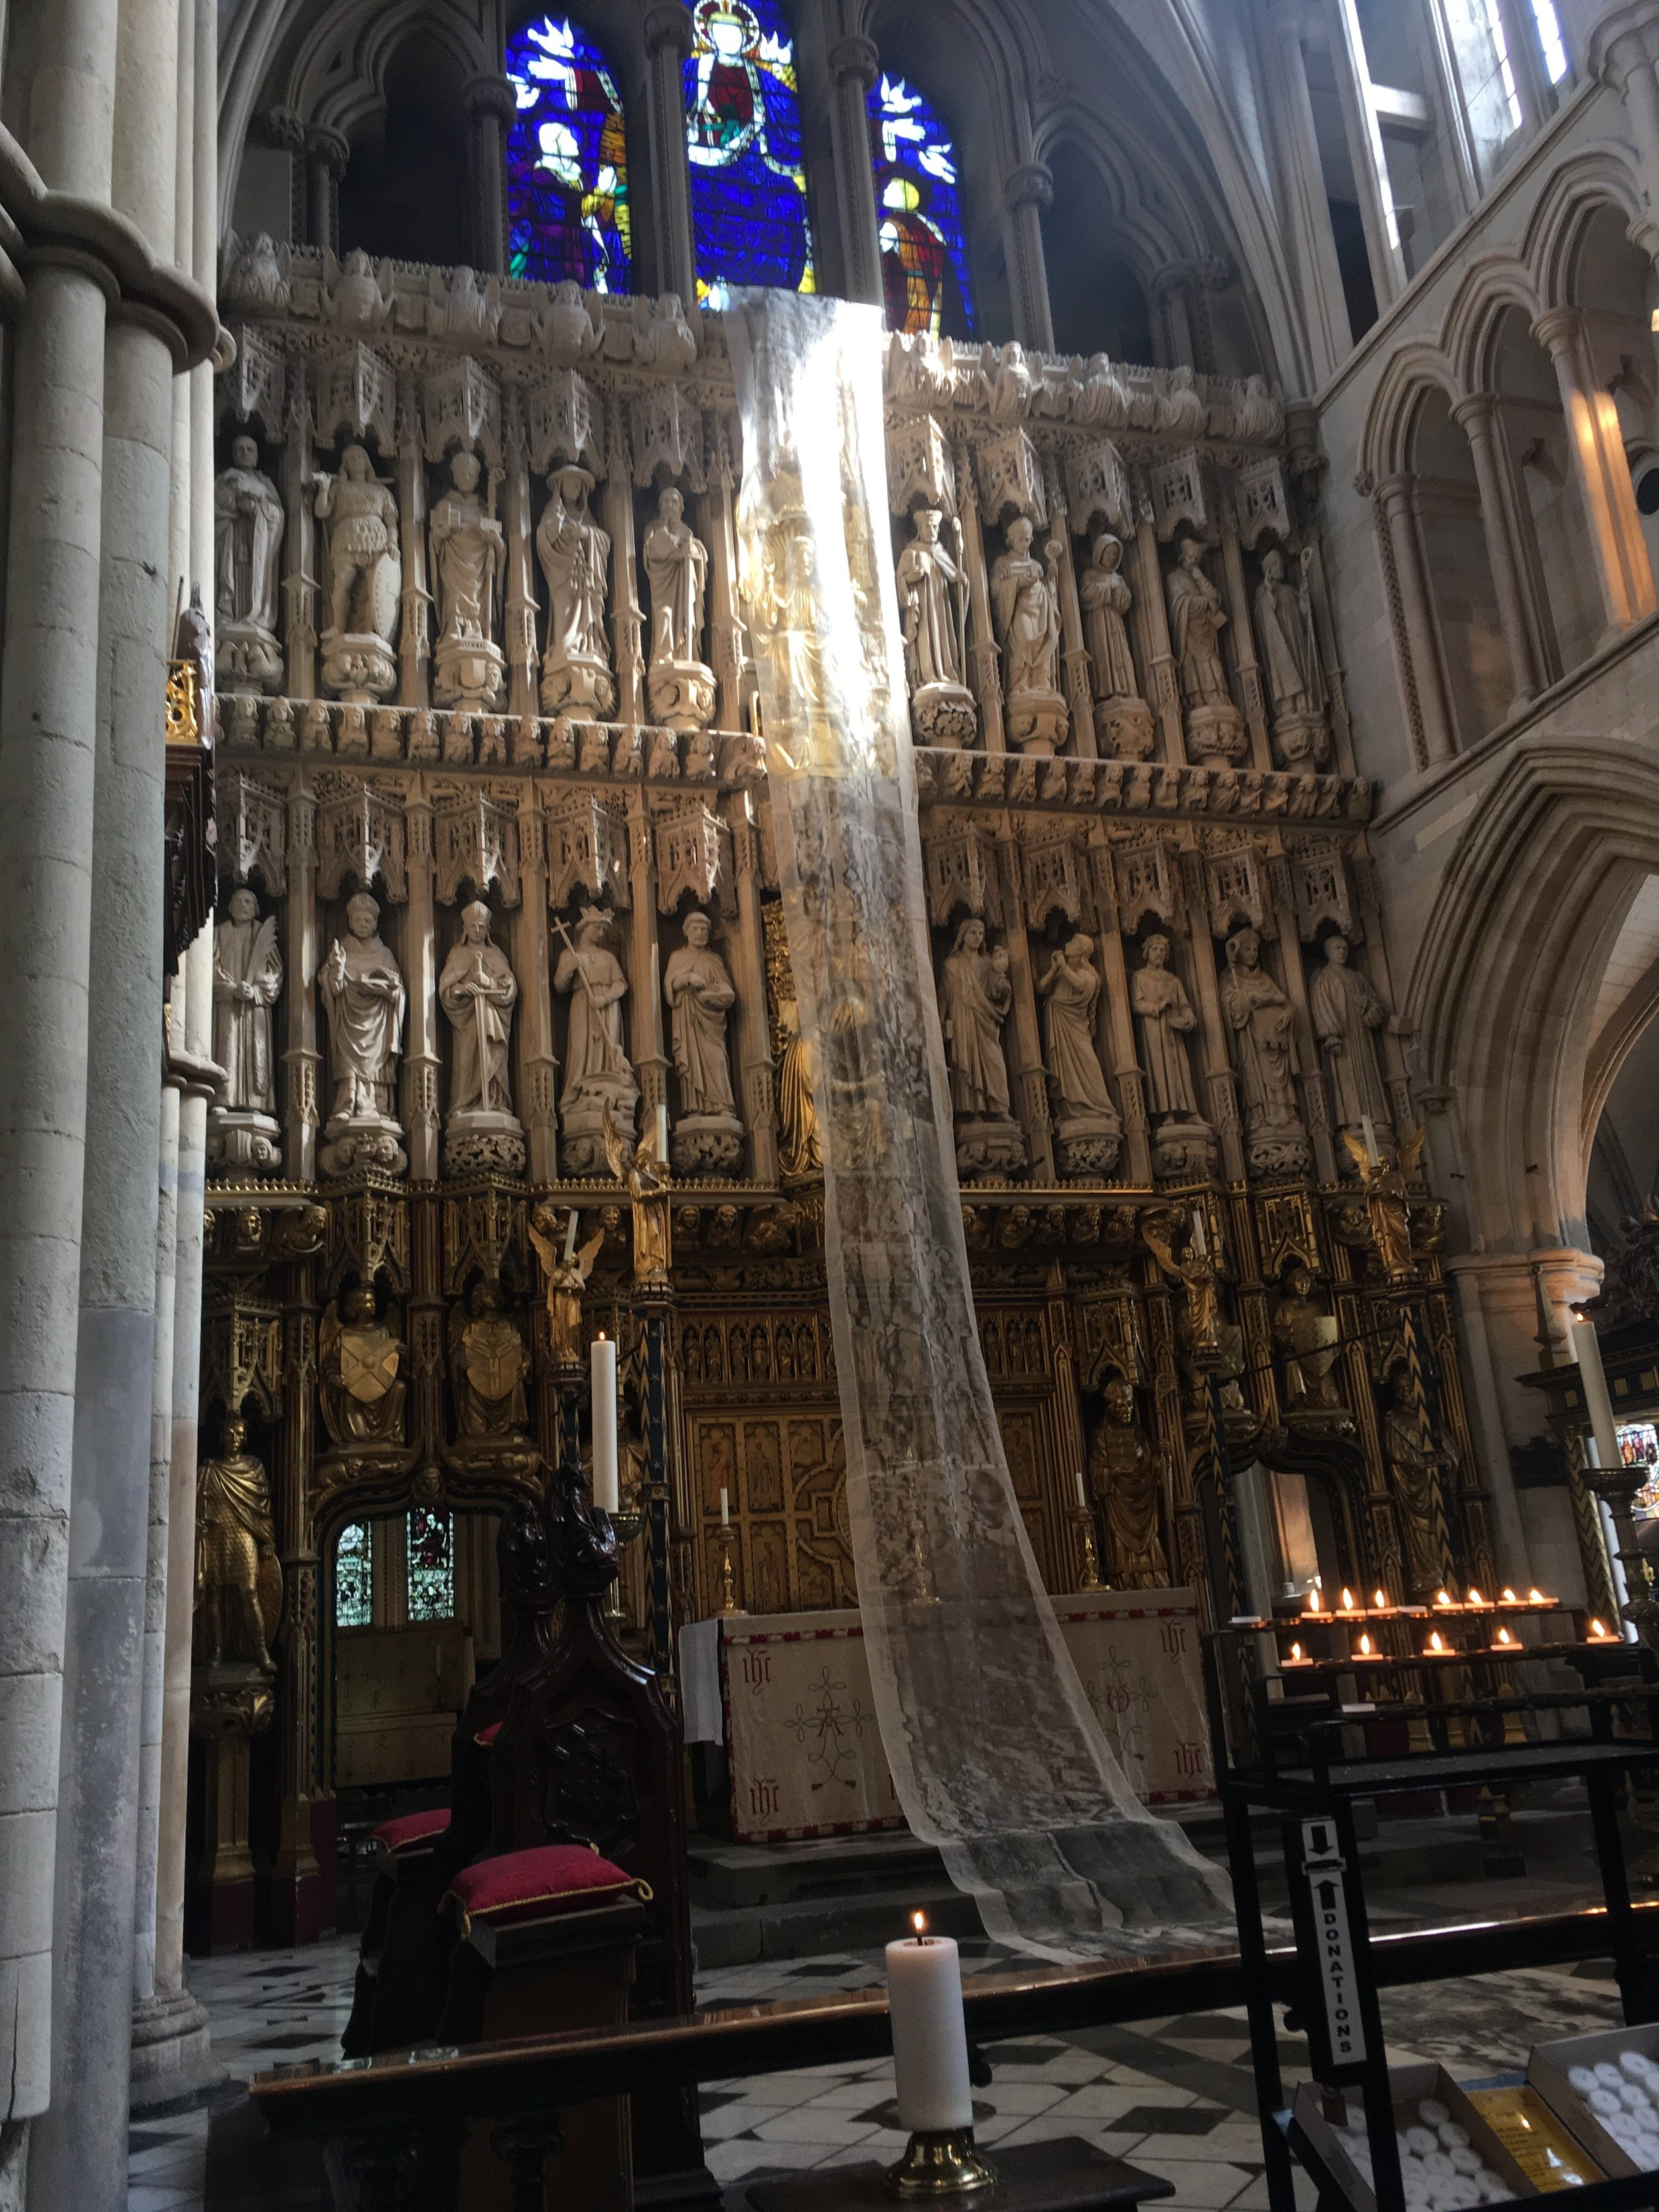 Footfall. Alison Clark. Lent Art Installation 2019 Southwark Cathedral Photo credit: Alison Clark